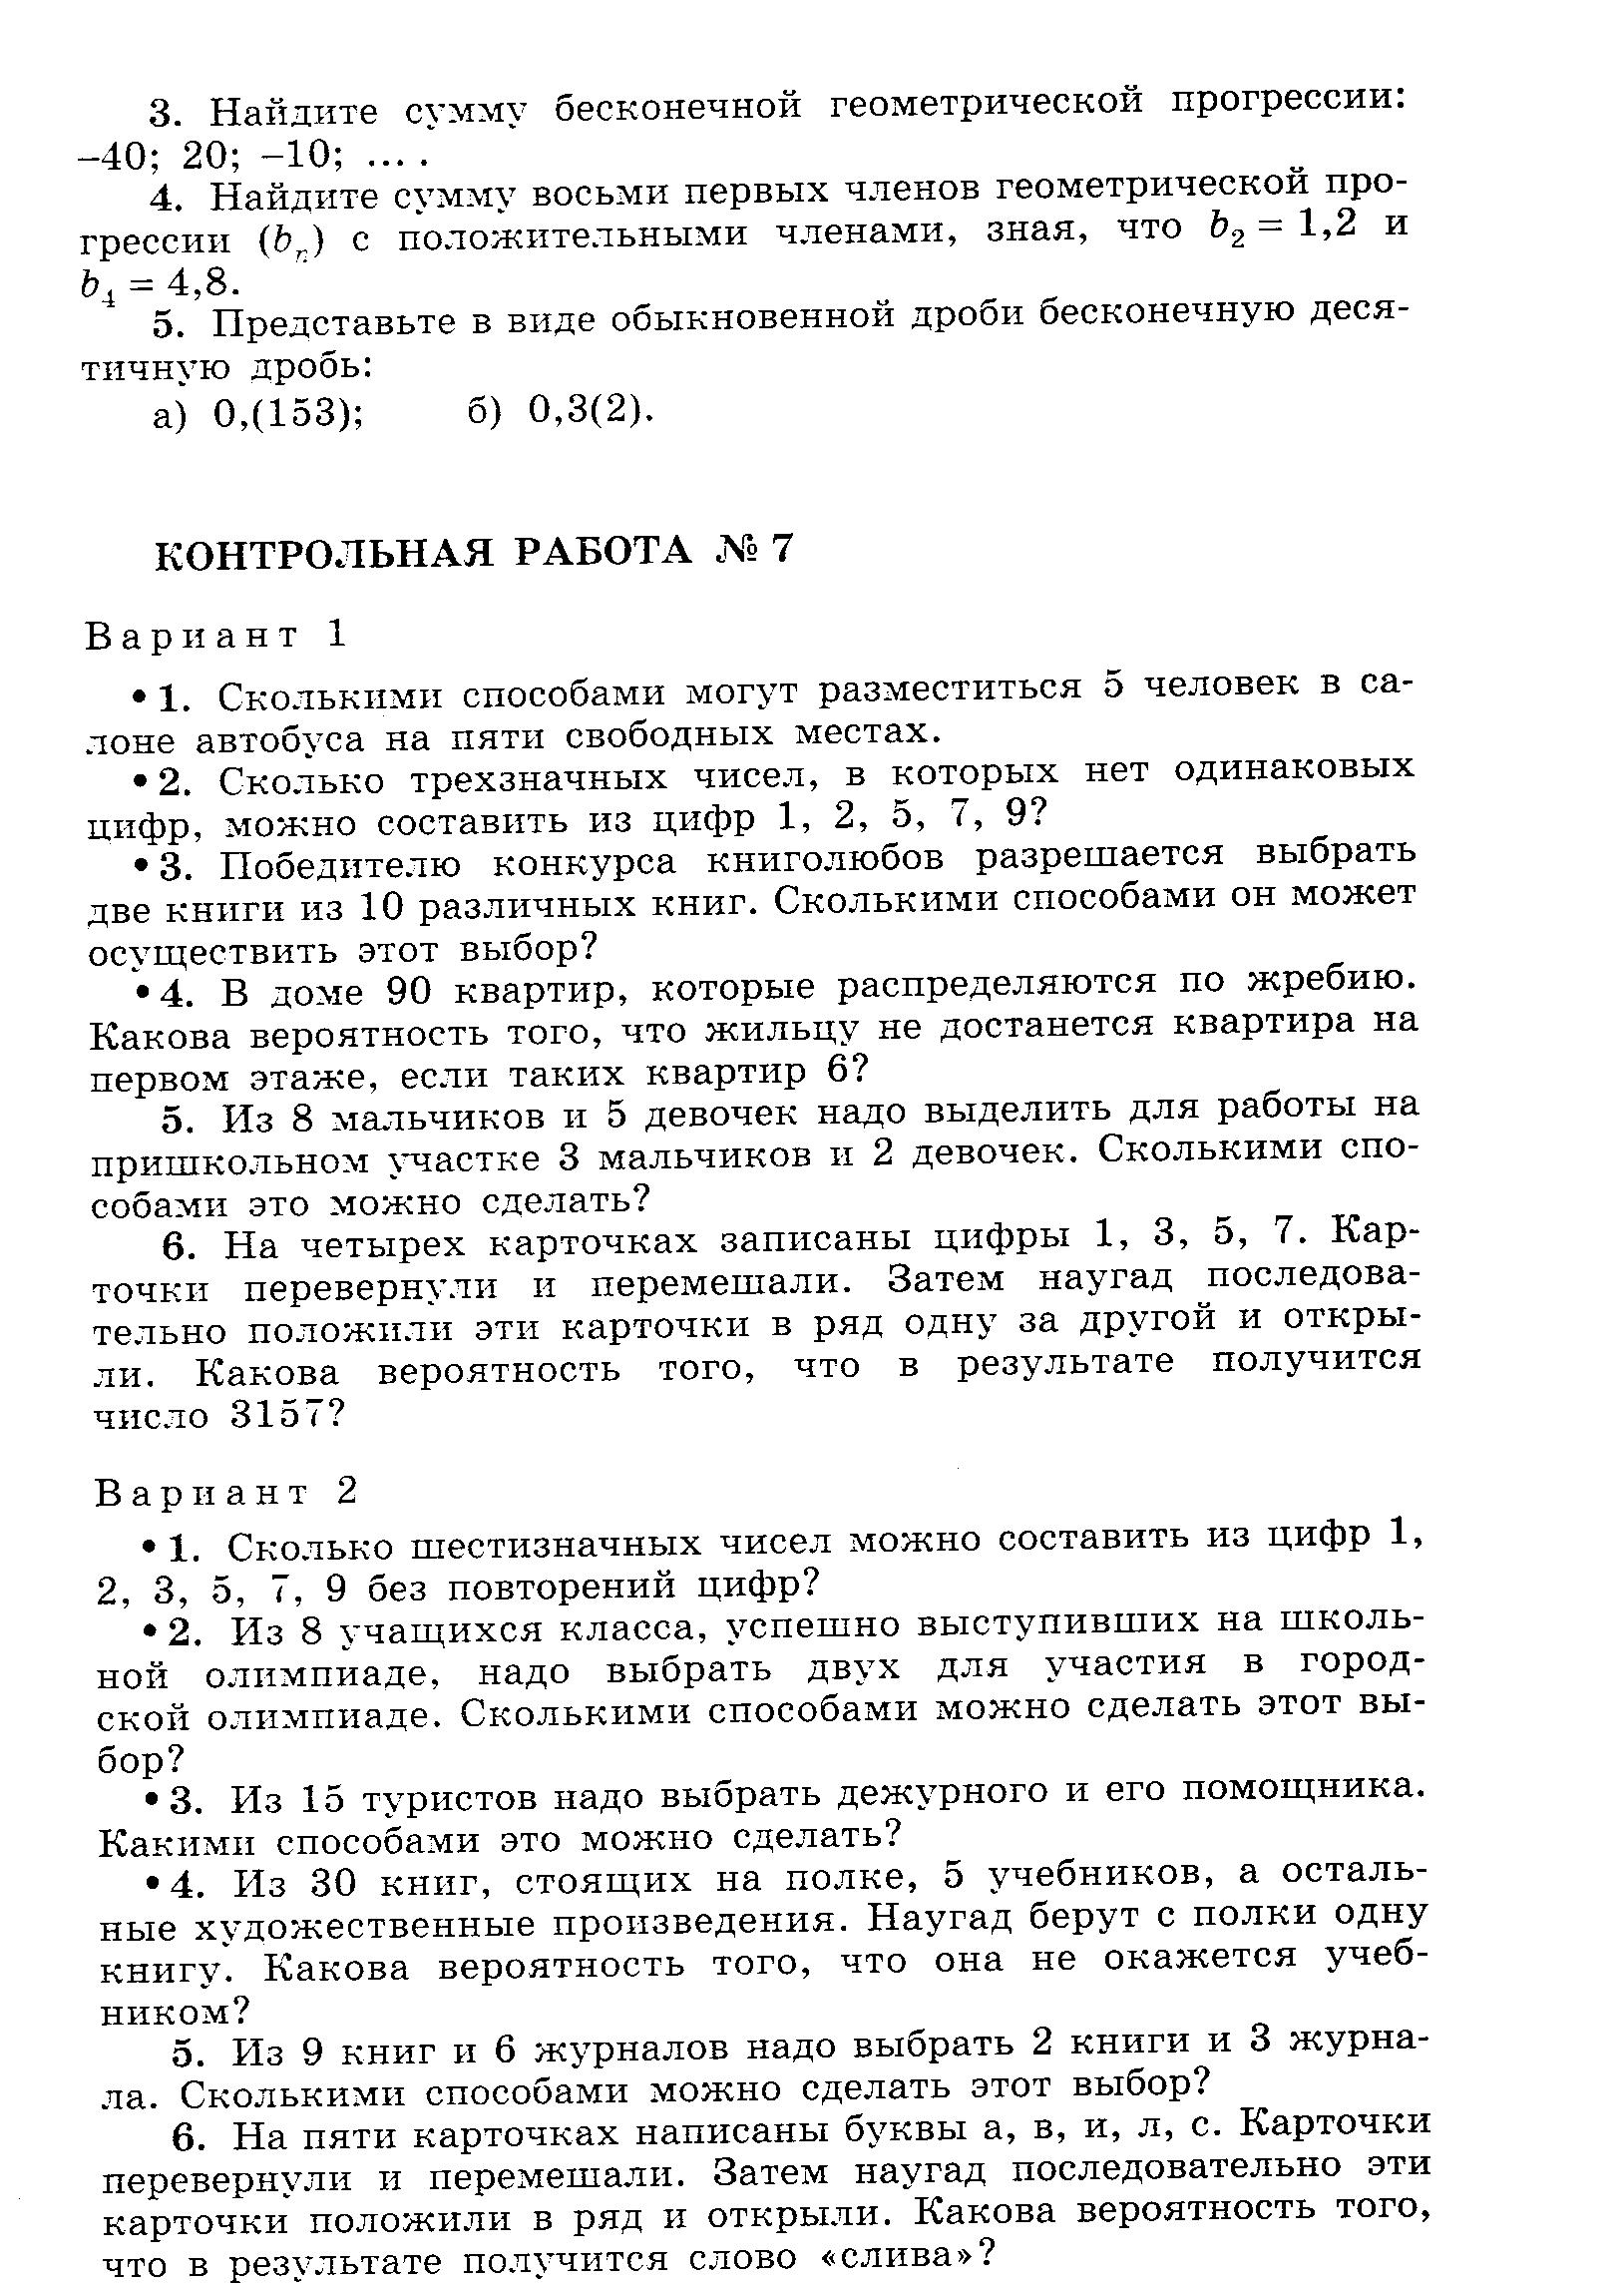 C:\Documents and Settings\Admin\Local Settings\Temporary Internet Files\Content.Word\сканирование0073.tif